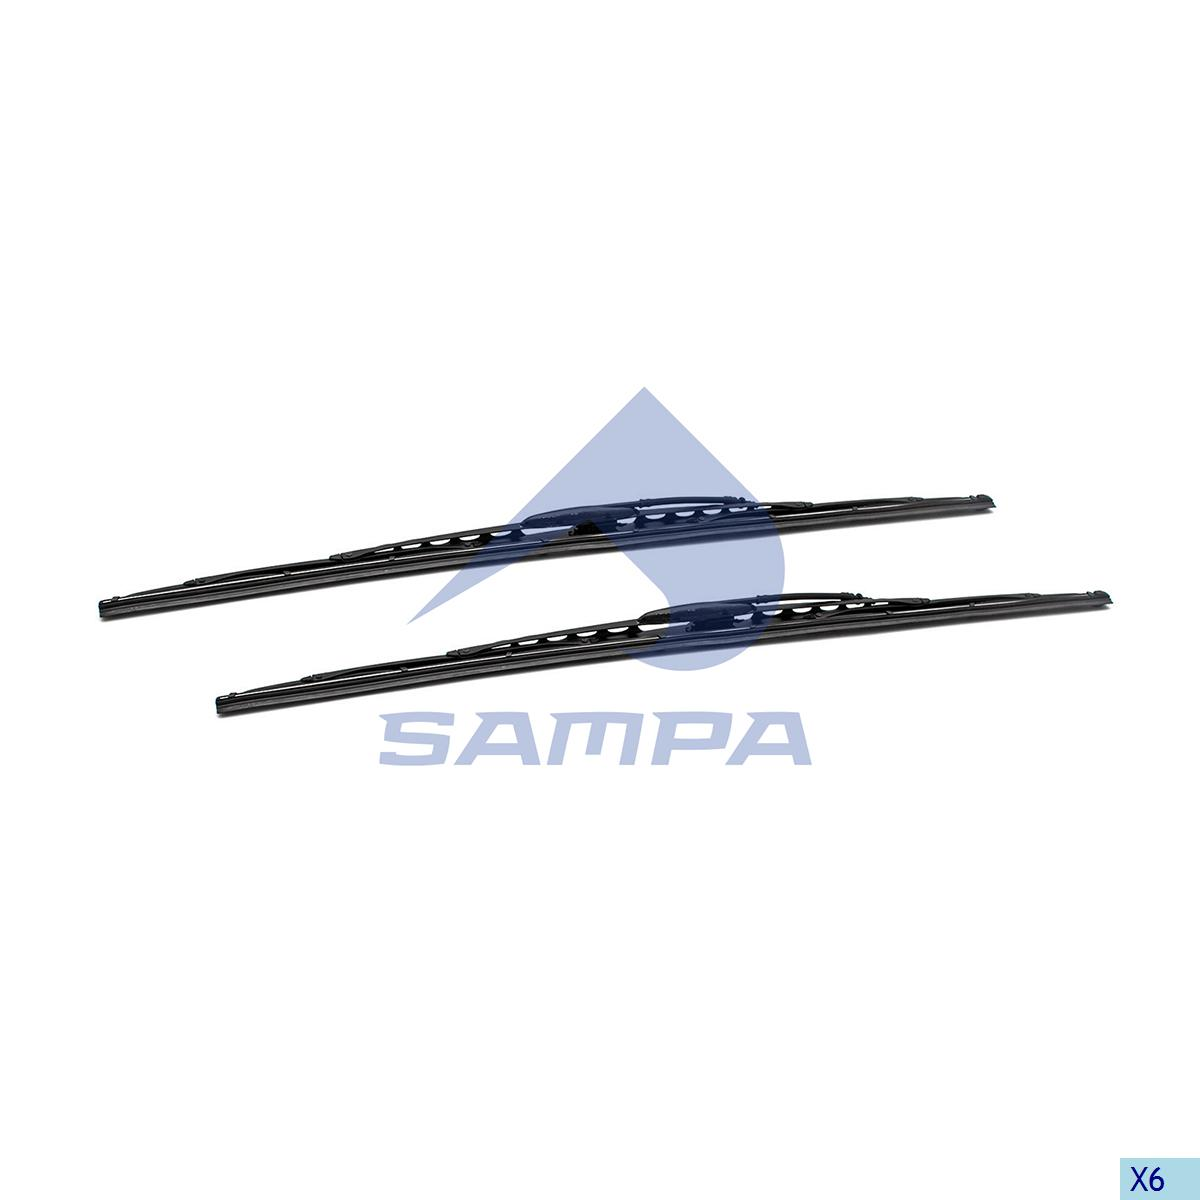 Blade, Windscreen Wiper, R.V.I., Cab